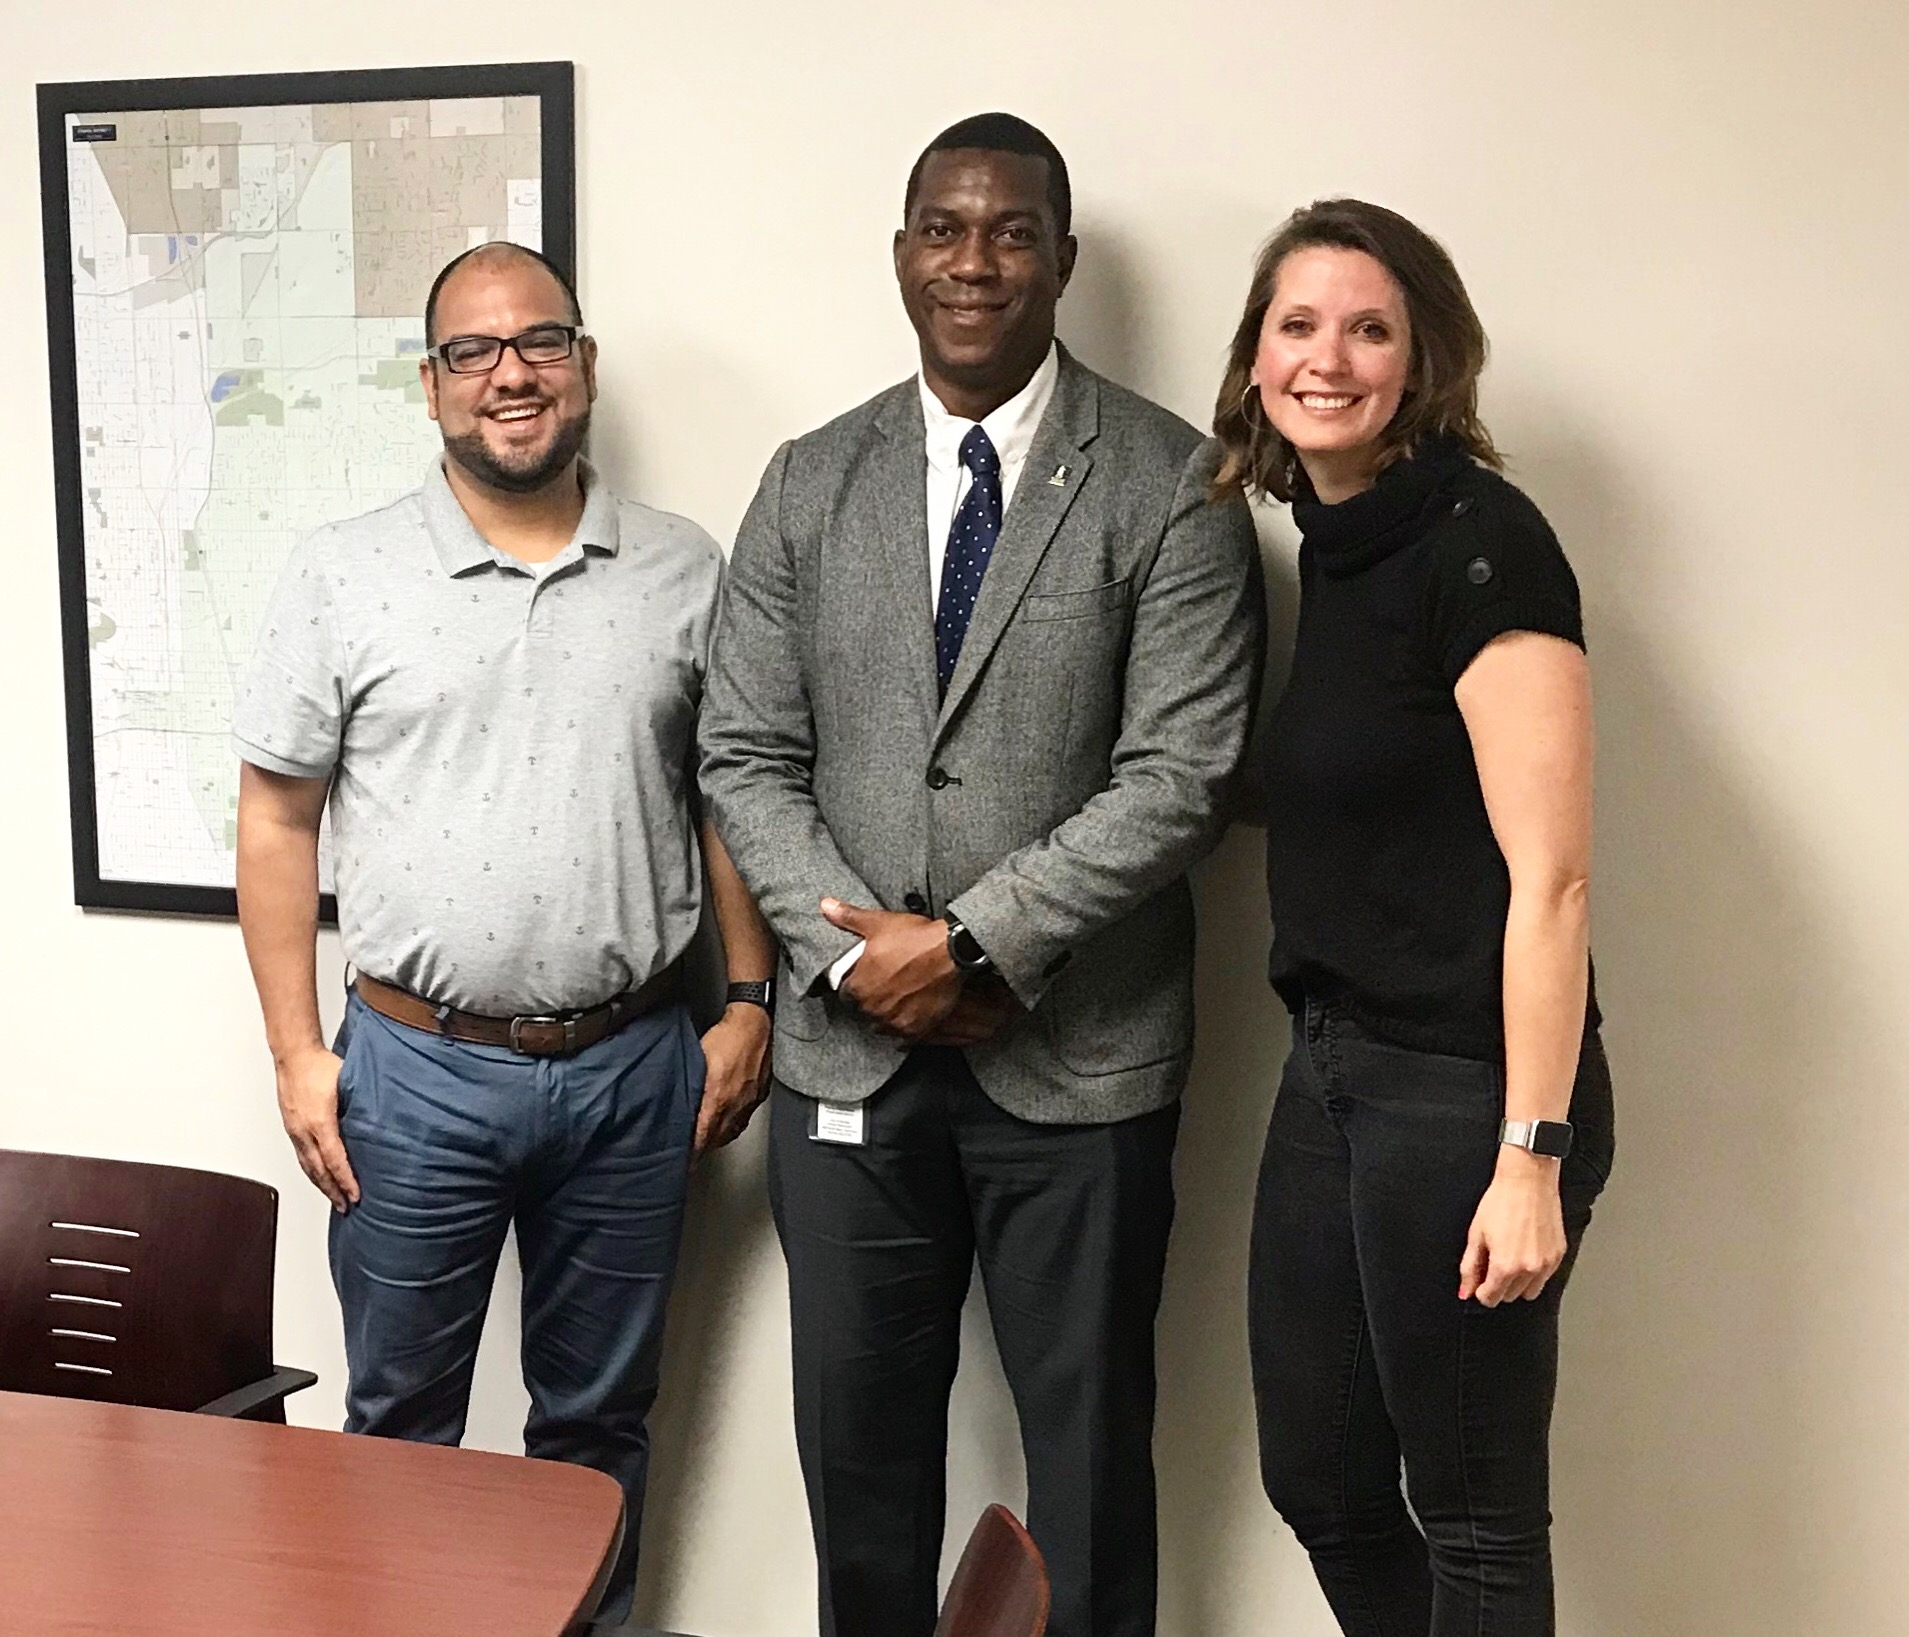 Jason and Renee sat down to talk with Councilmember Johnson at District 1's City Hall, the Atwater Center.